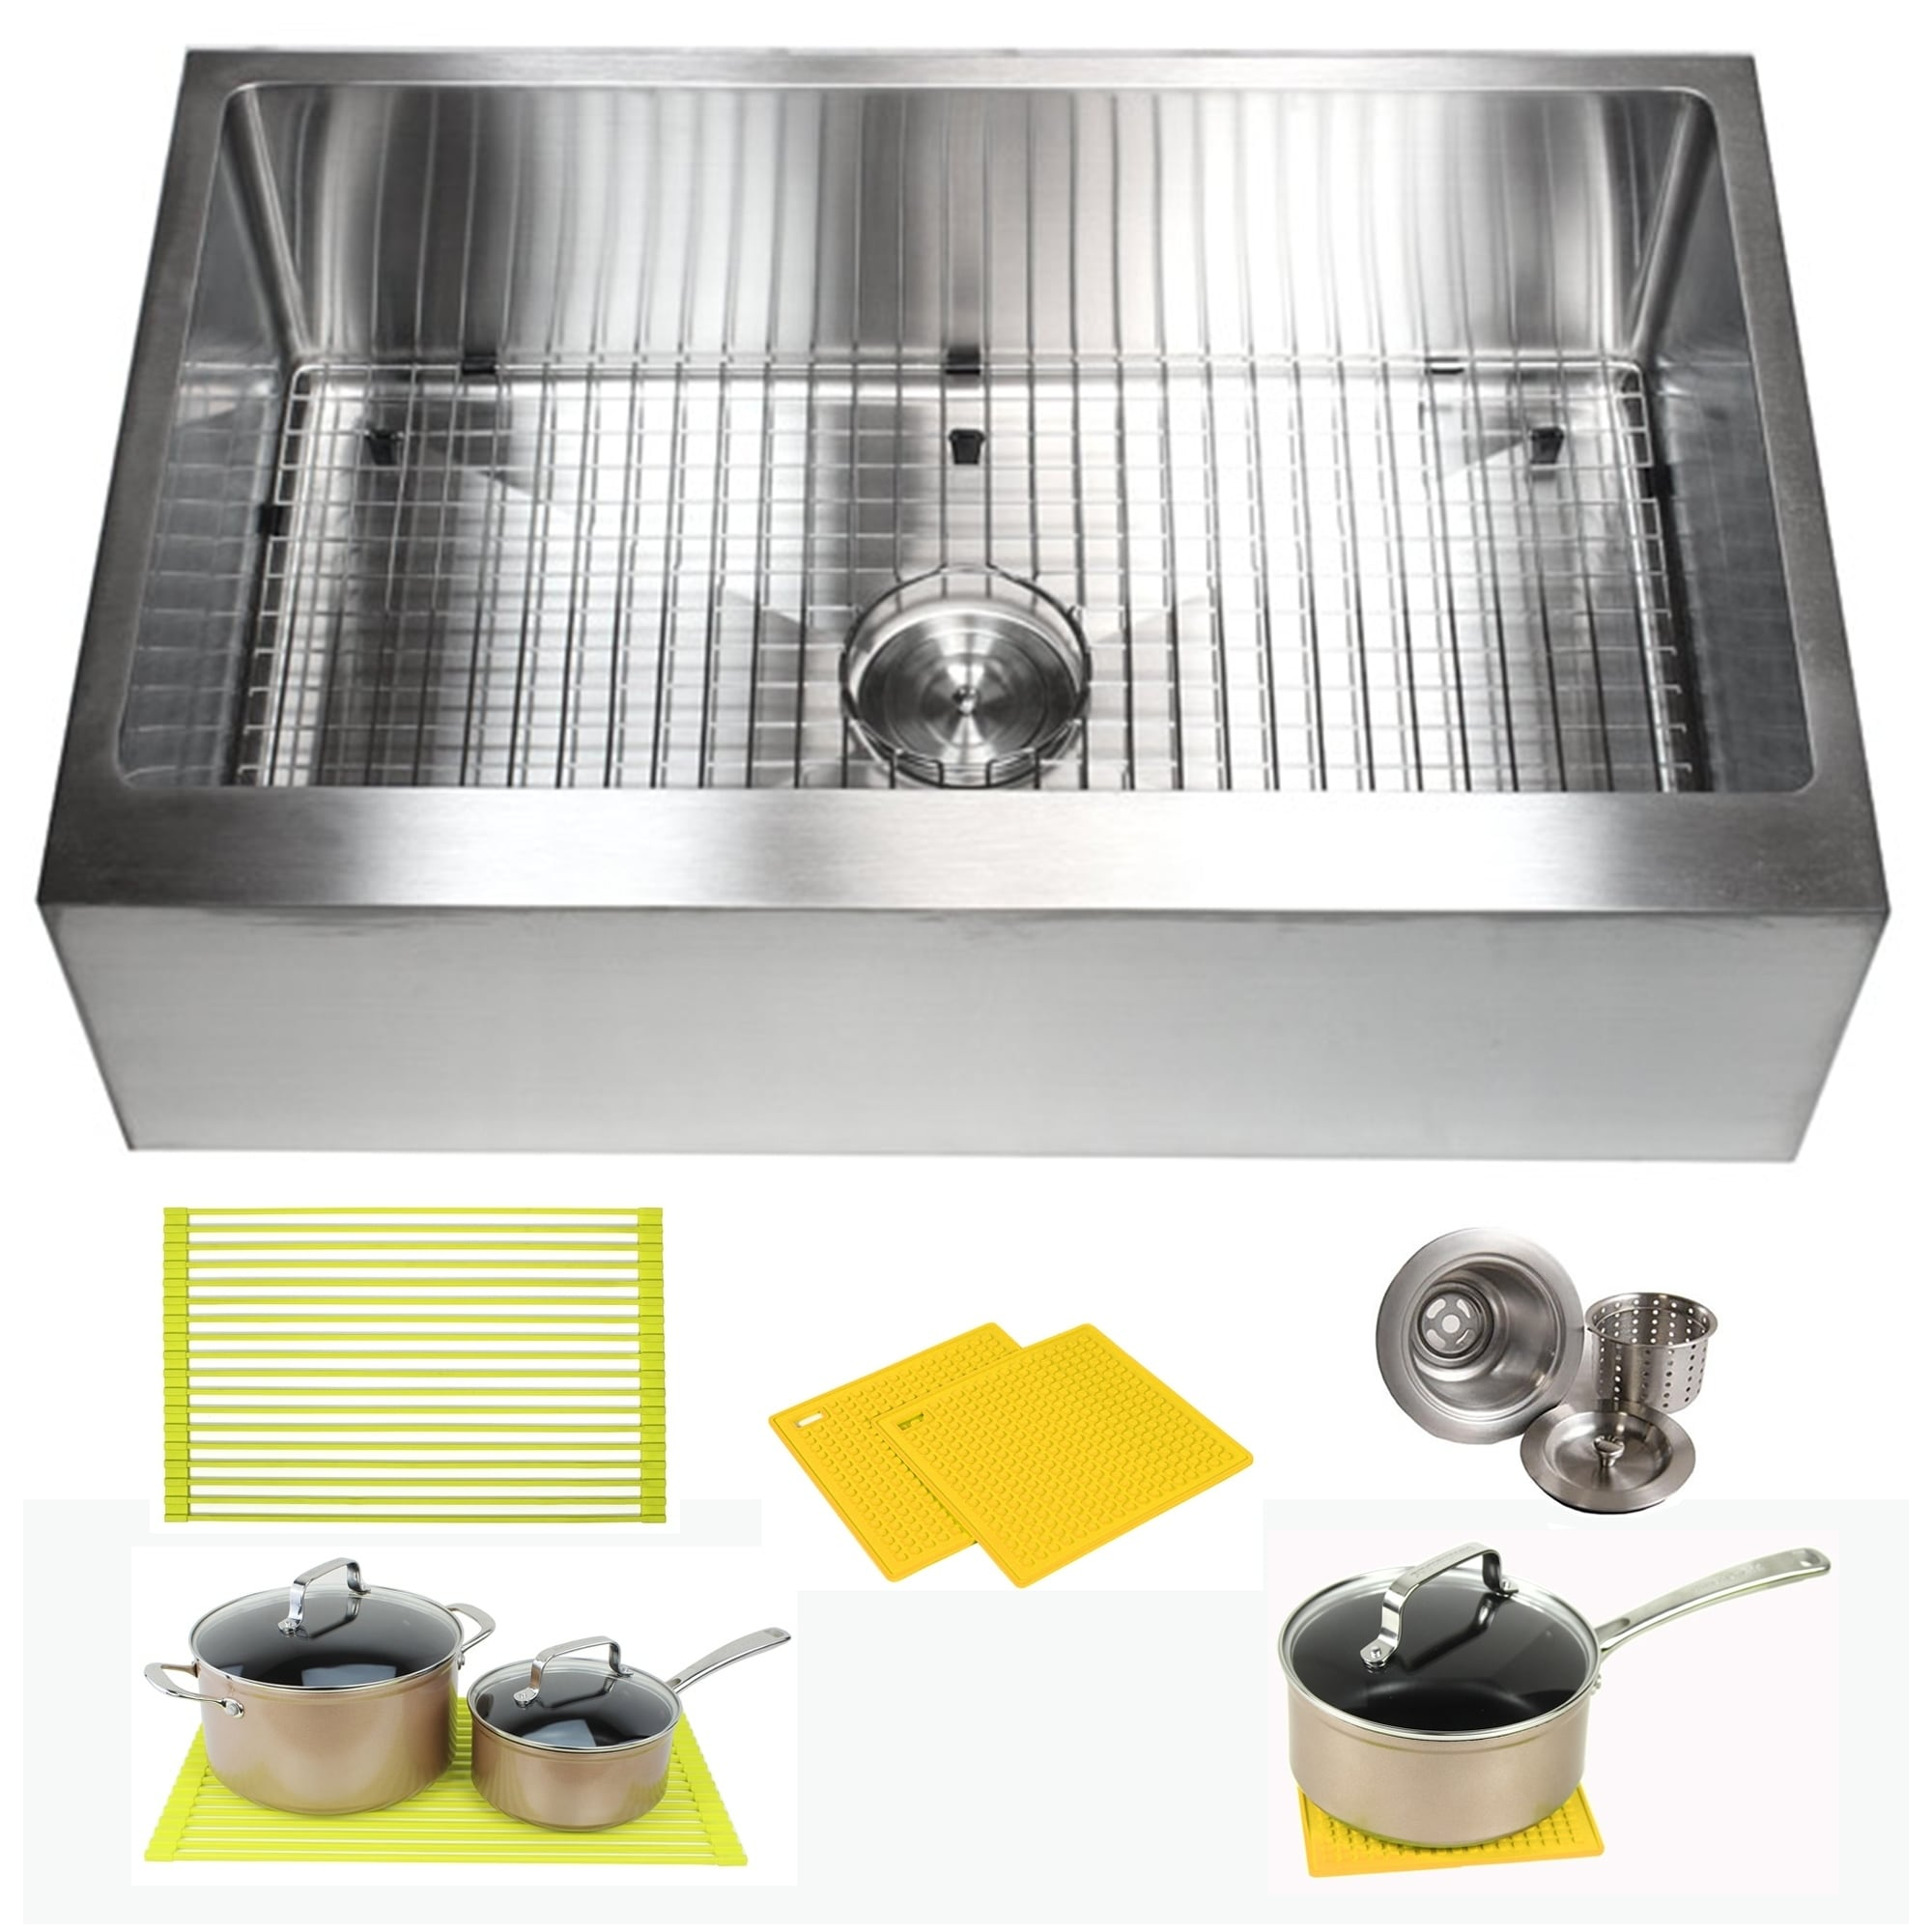 Flat Pack Outdoor Kitchen Ariel 33 Inch Farmhouse Apron Stainless Steel Kitchen Sink 16 Gauge Flat Front Single Bowl Sink Pack Bonus Kitchen Accessories